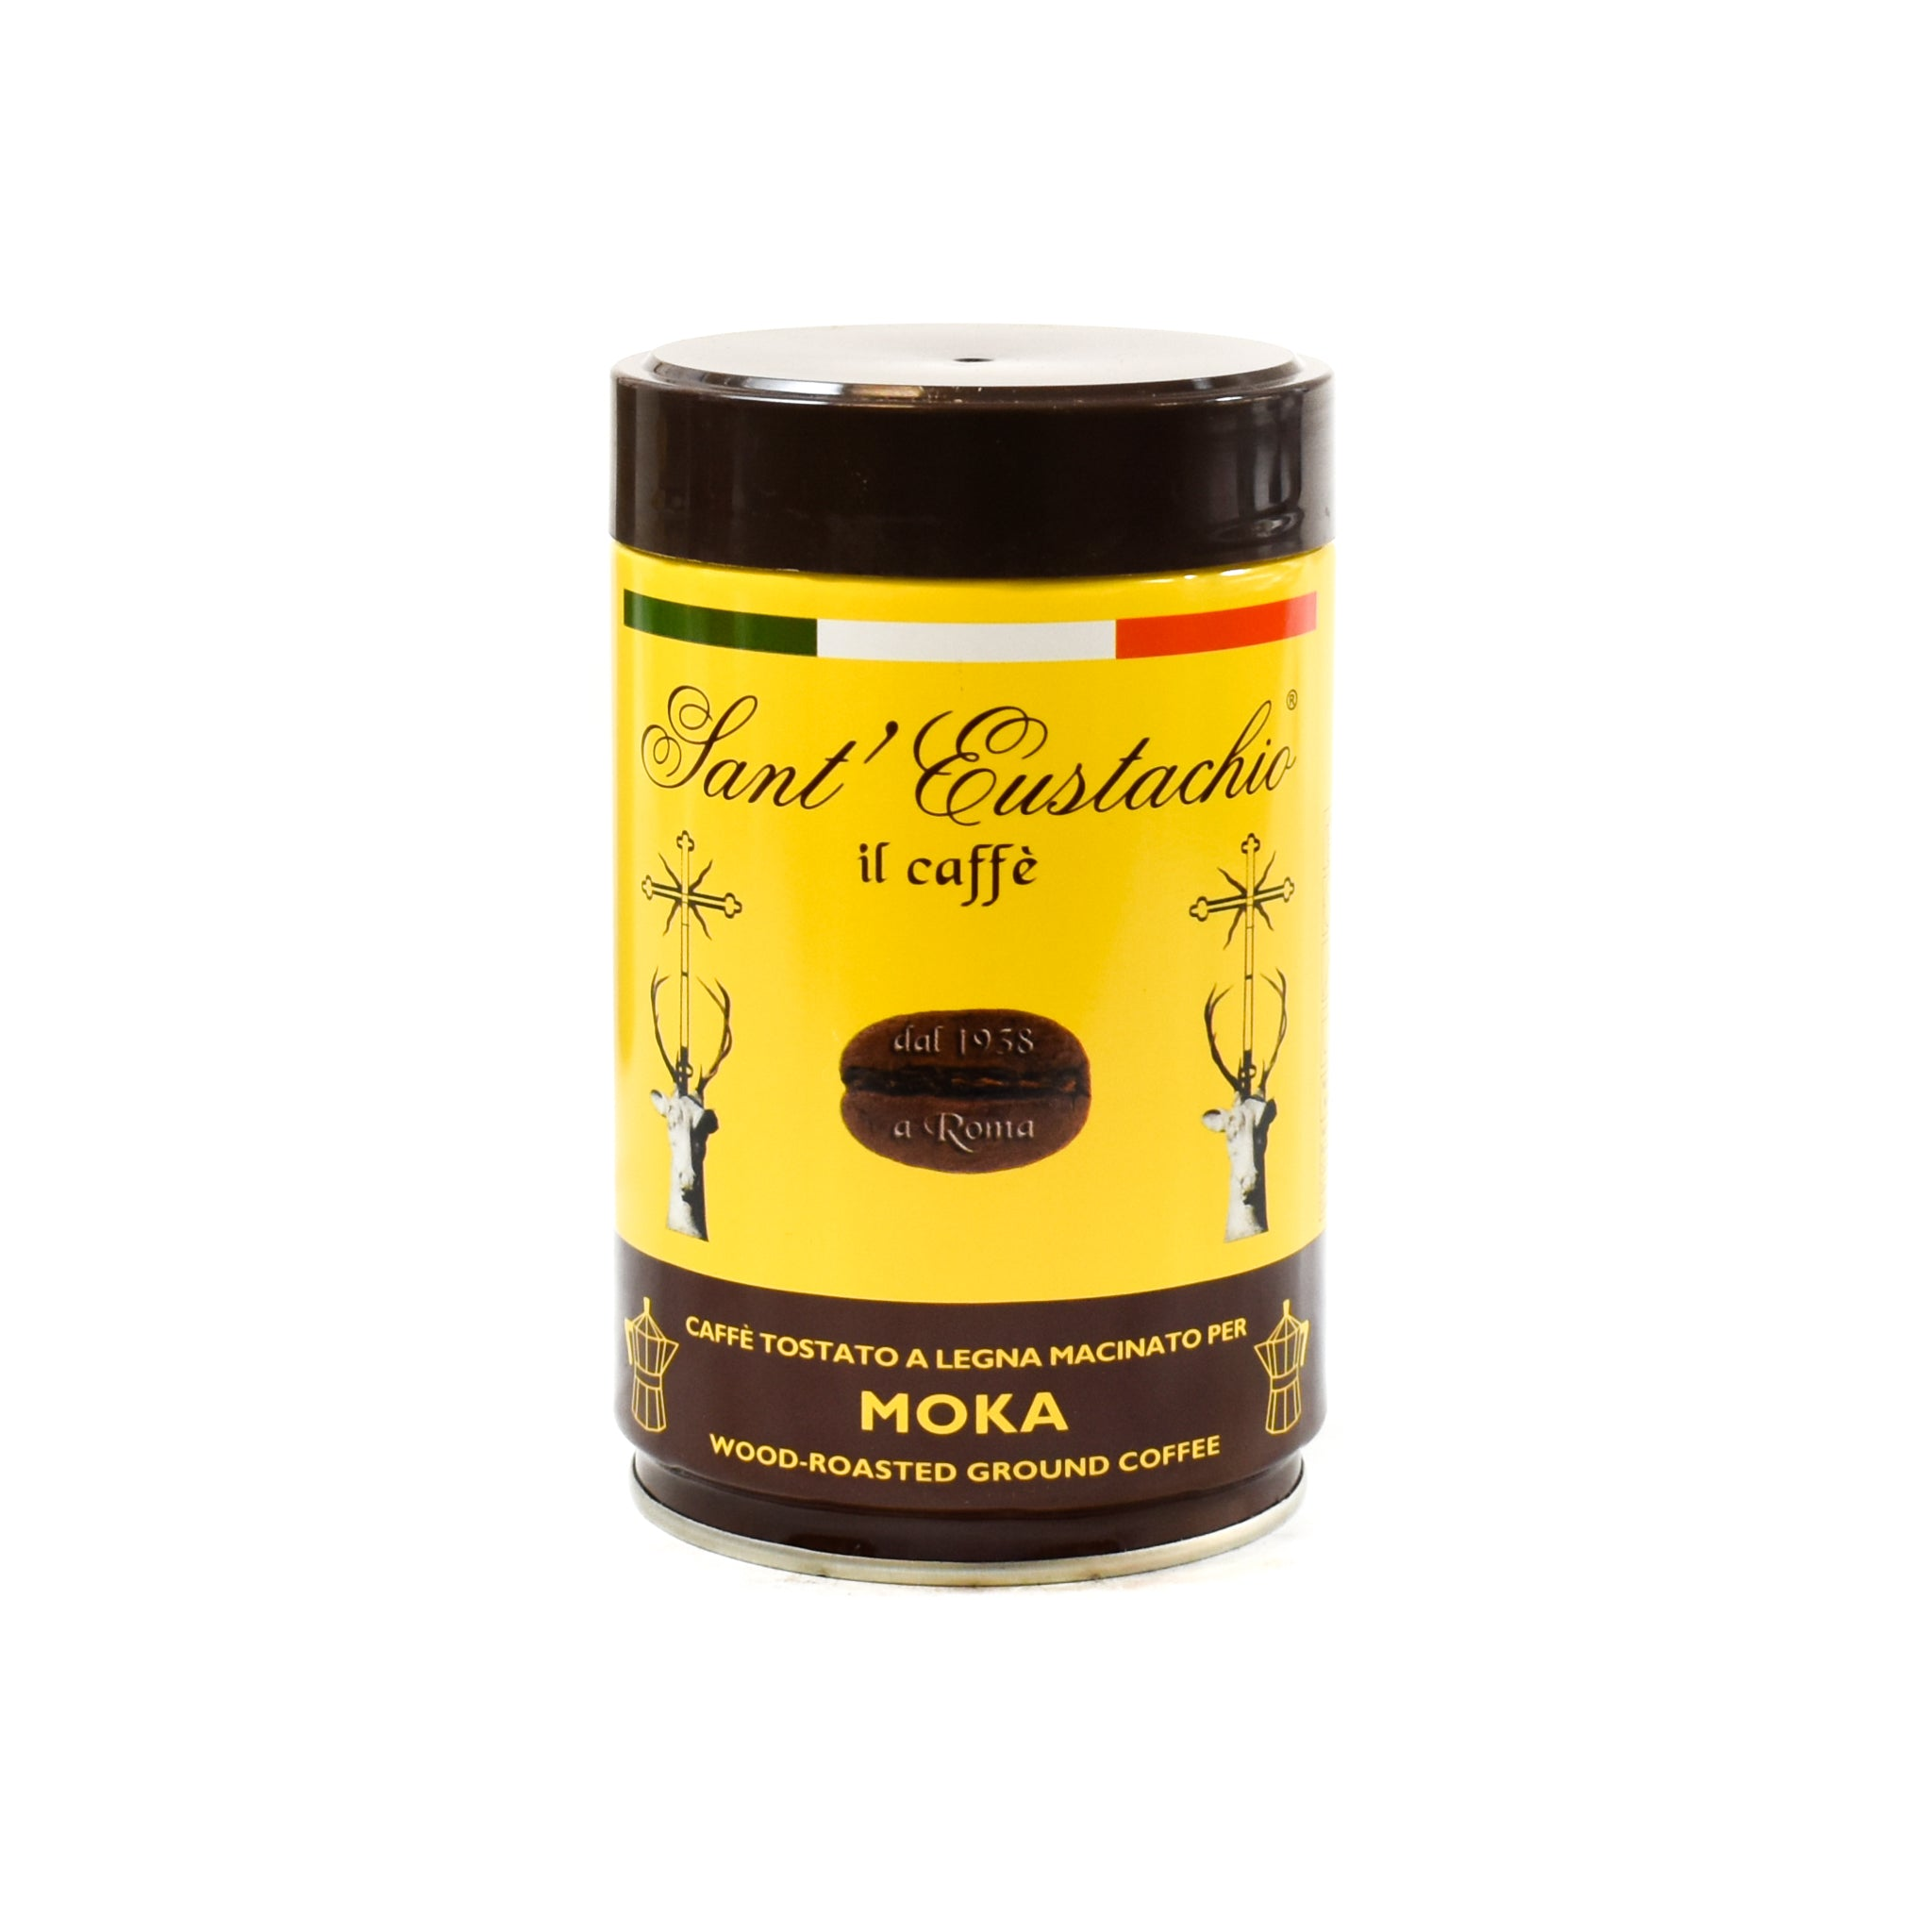 Sant 'Eustachio il caffe Sant'Eustachio Moka Ground Coffee 250g Ingredients Drinks Tea & Coffee Italian Food